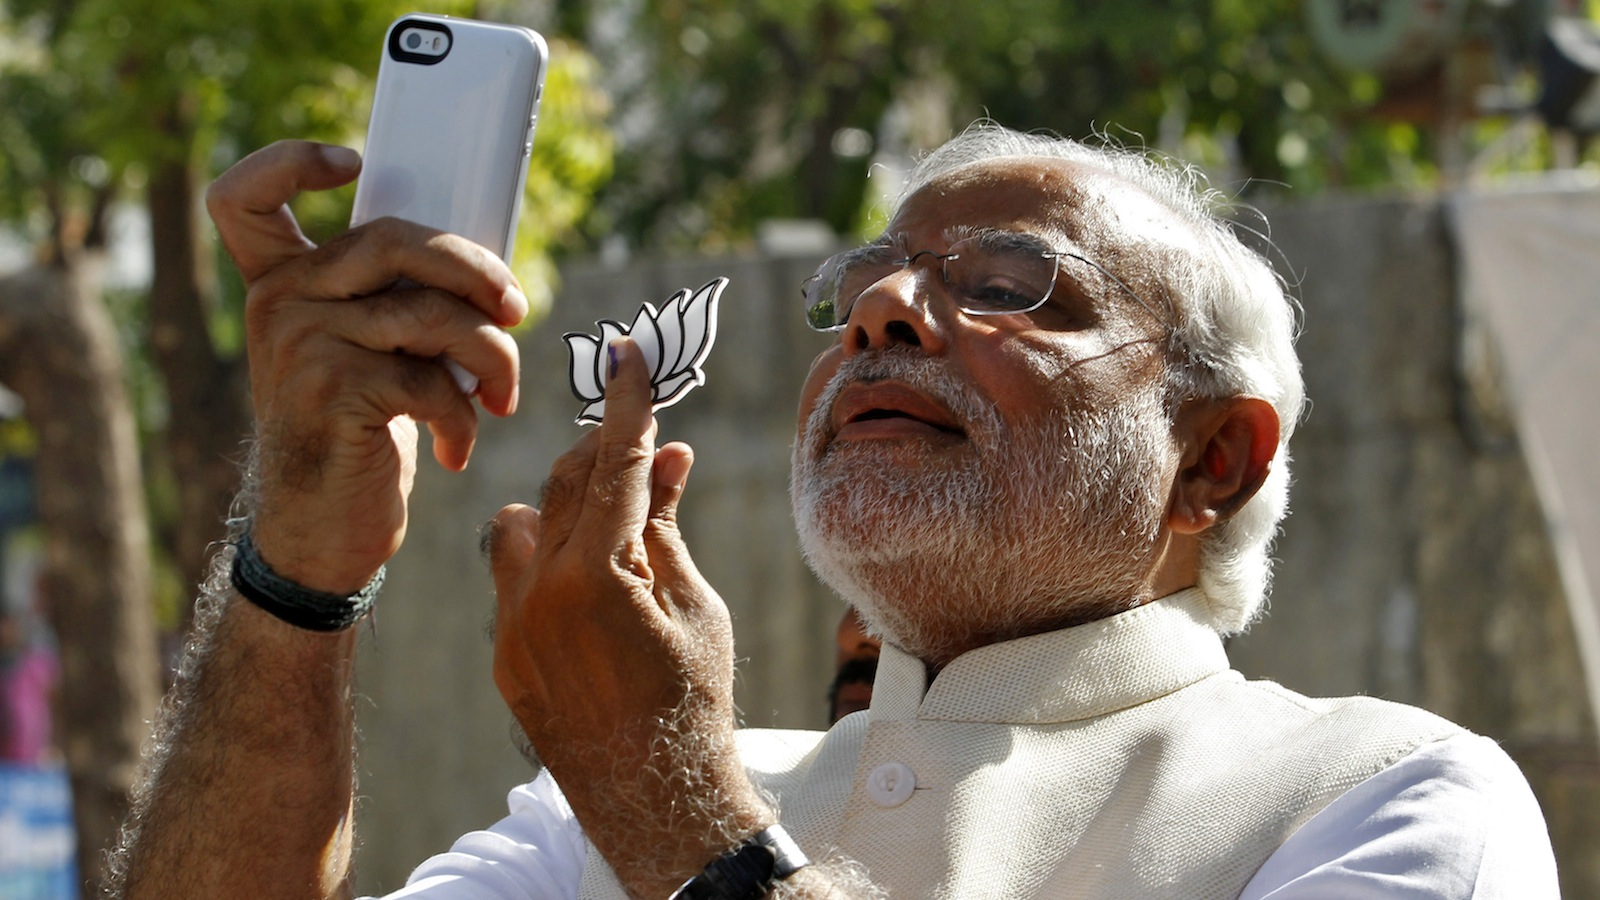 "Hindu nationalist Narendra Modi, the prime ministerial candidate for India's main opposition Bharatiya Janata Party (BJP), takes a ""selfie"" with a mobile phone after casting his vote at a polling station during the seventh phase of India's general election in the western Indian city of Ahmedabad April 30, 2014. Around 815 million people have registered to vote in the world's biggest election - a number exceeding the population of Europe and a world record - and results of the mammoth exercise, which concludes on May 12, are due on May 16. REUTERS/Amit Dave"